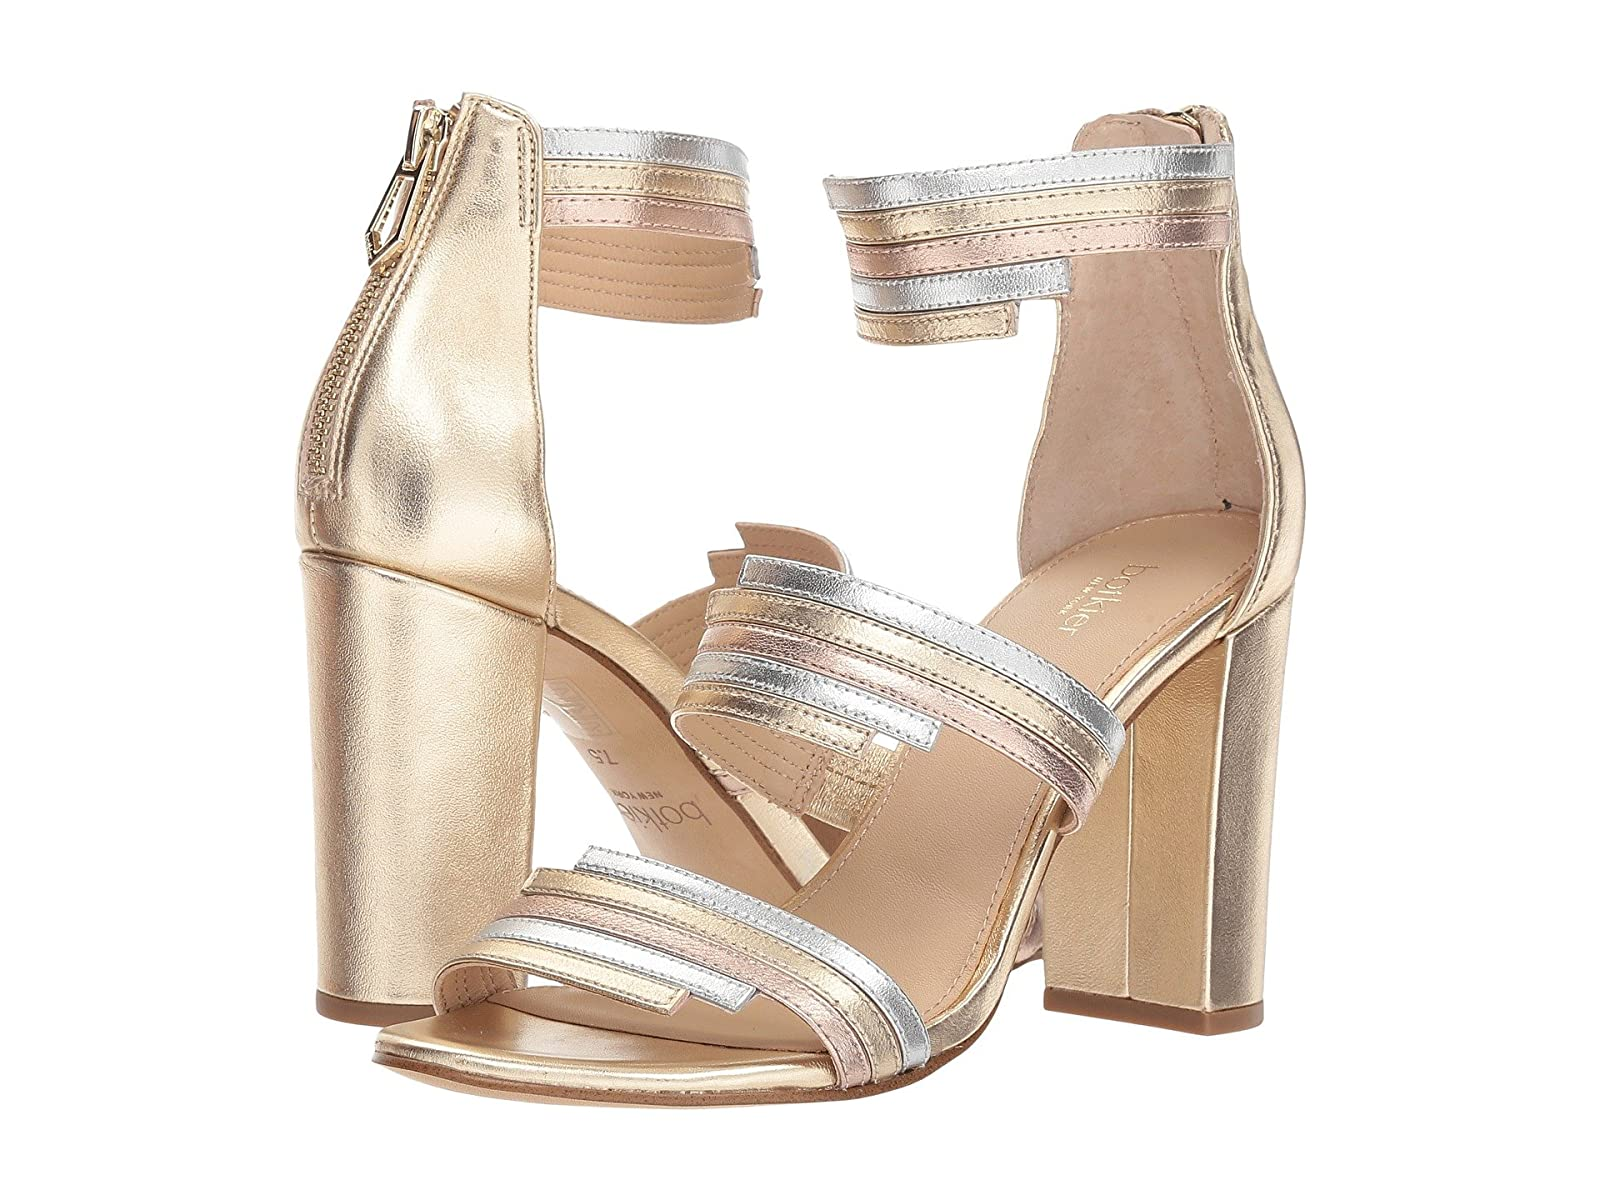 Botkier GreciaAtmospheric grades have affordable shoes